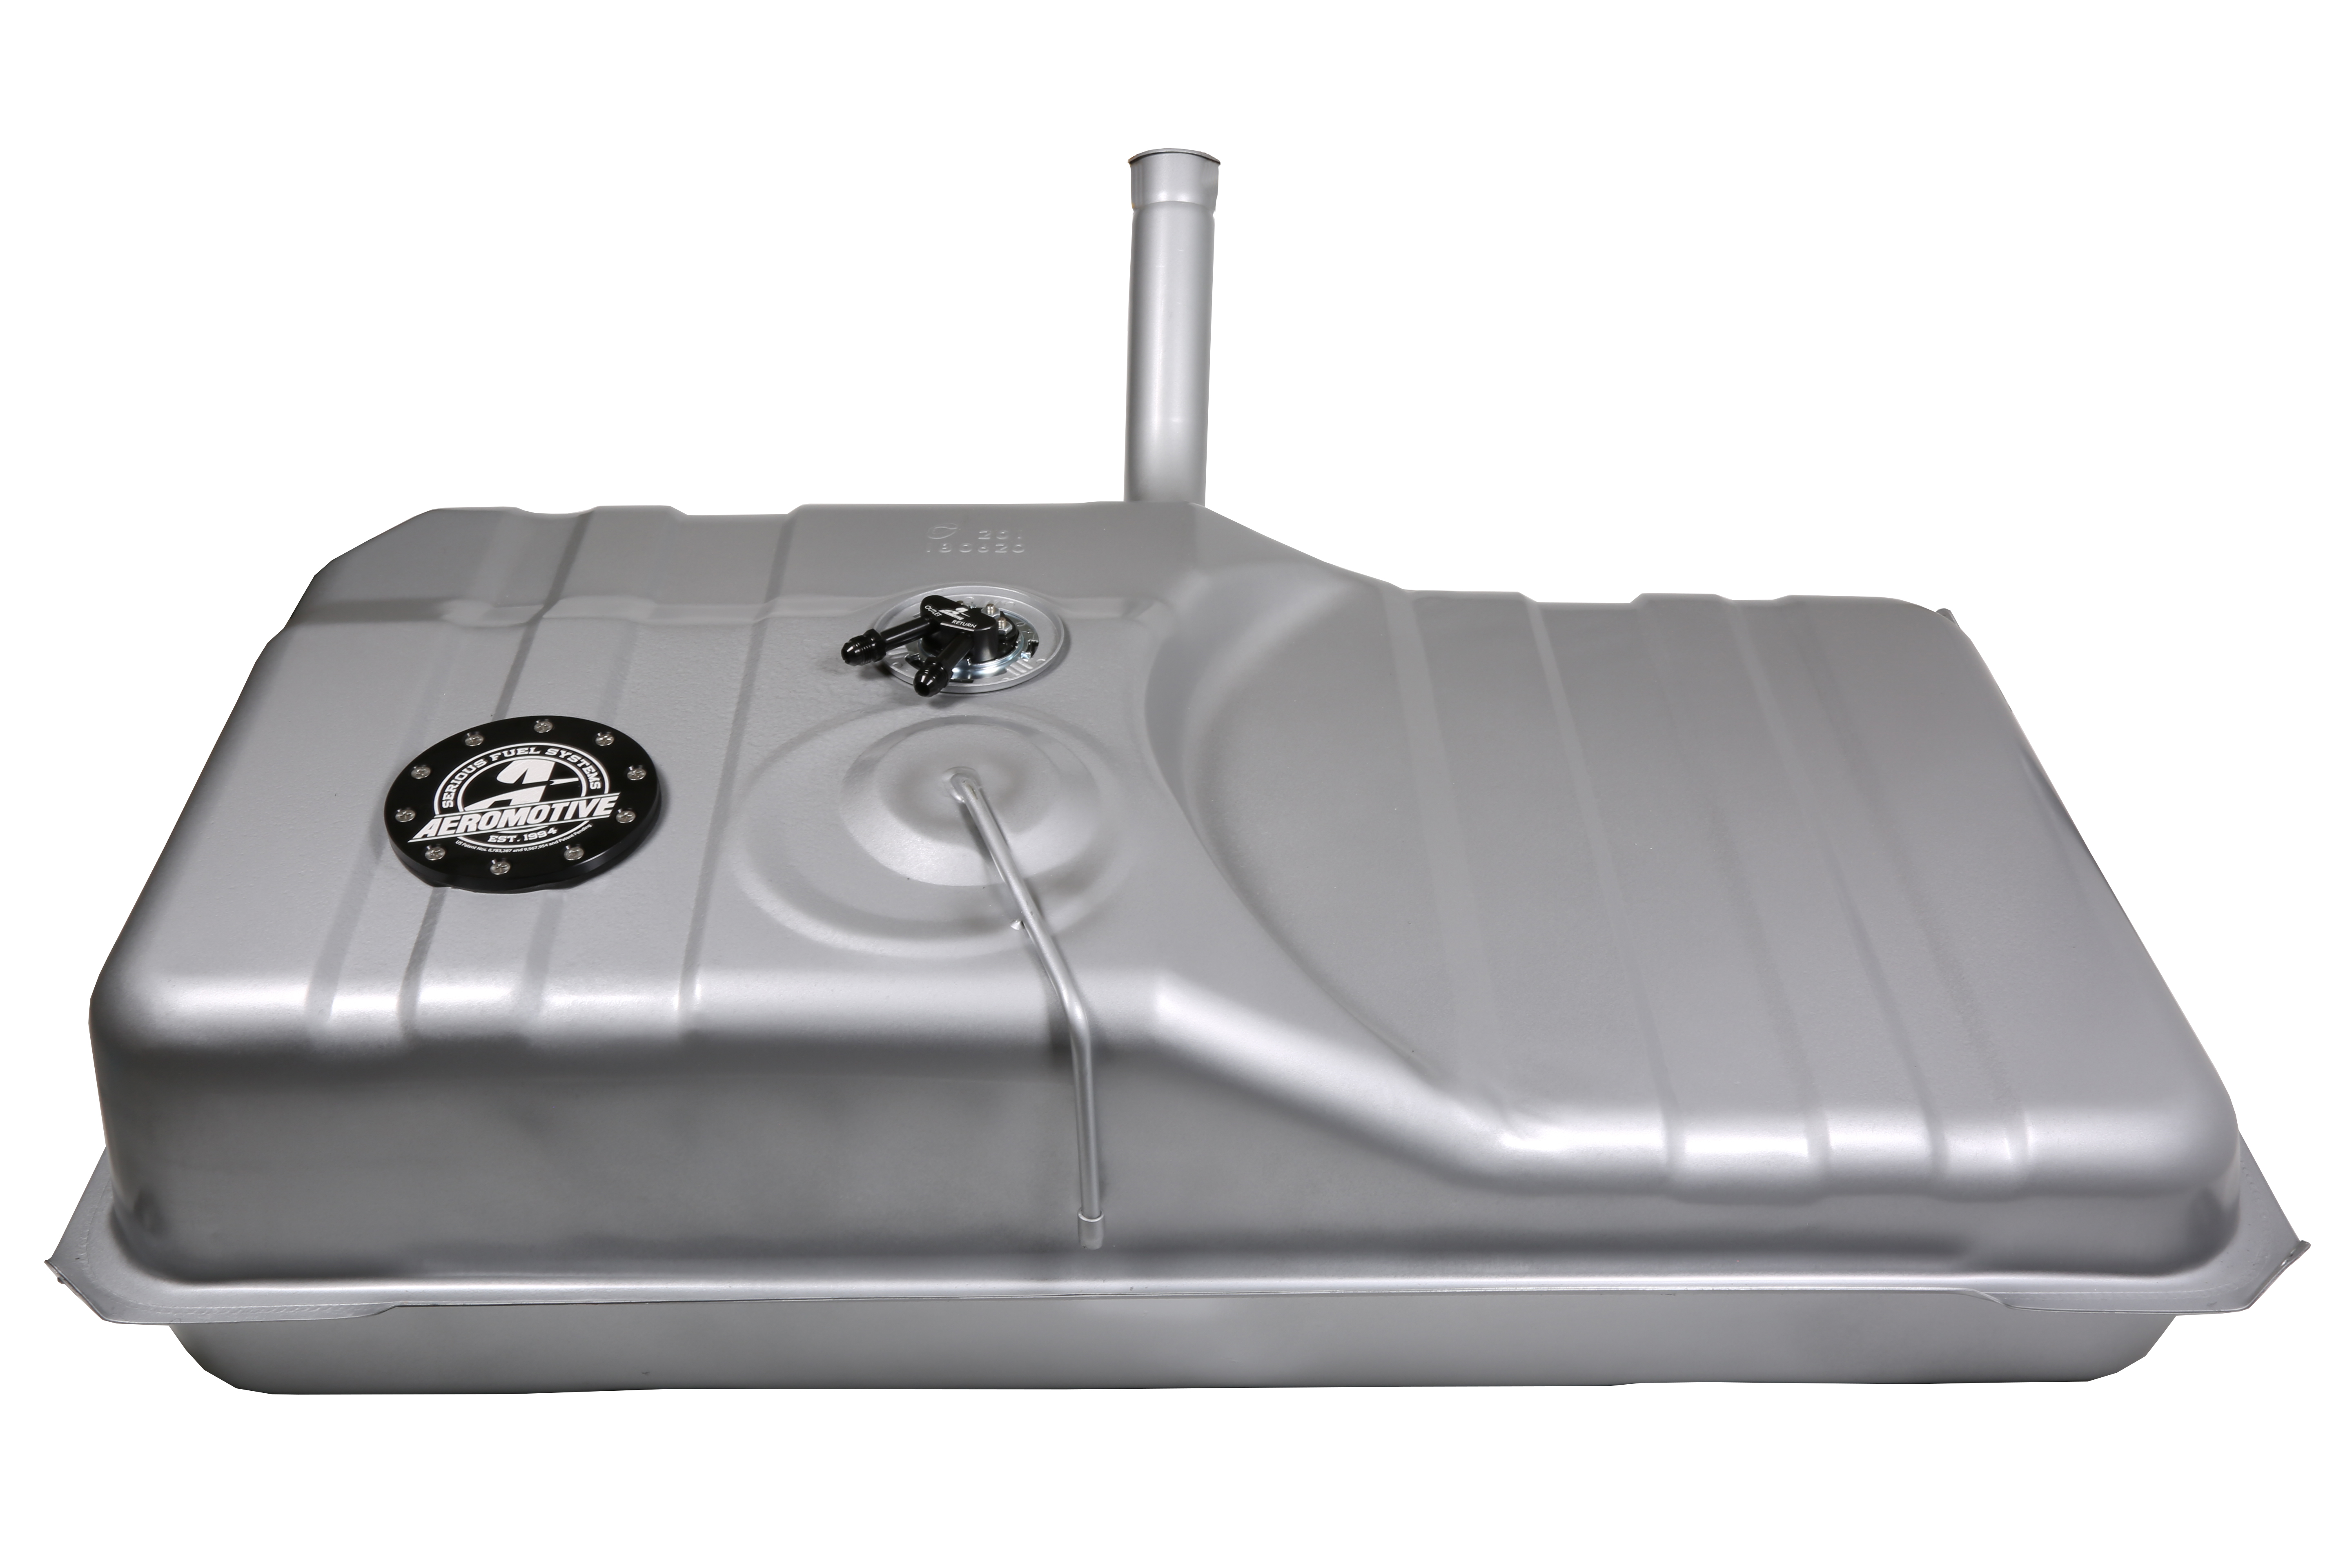 1980 Ford Mustang Gas Tank